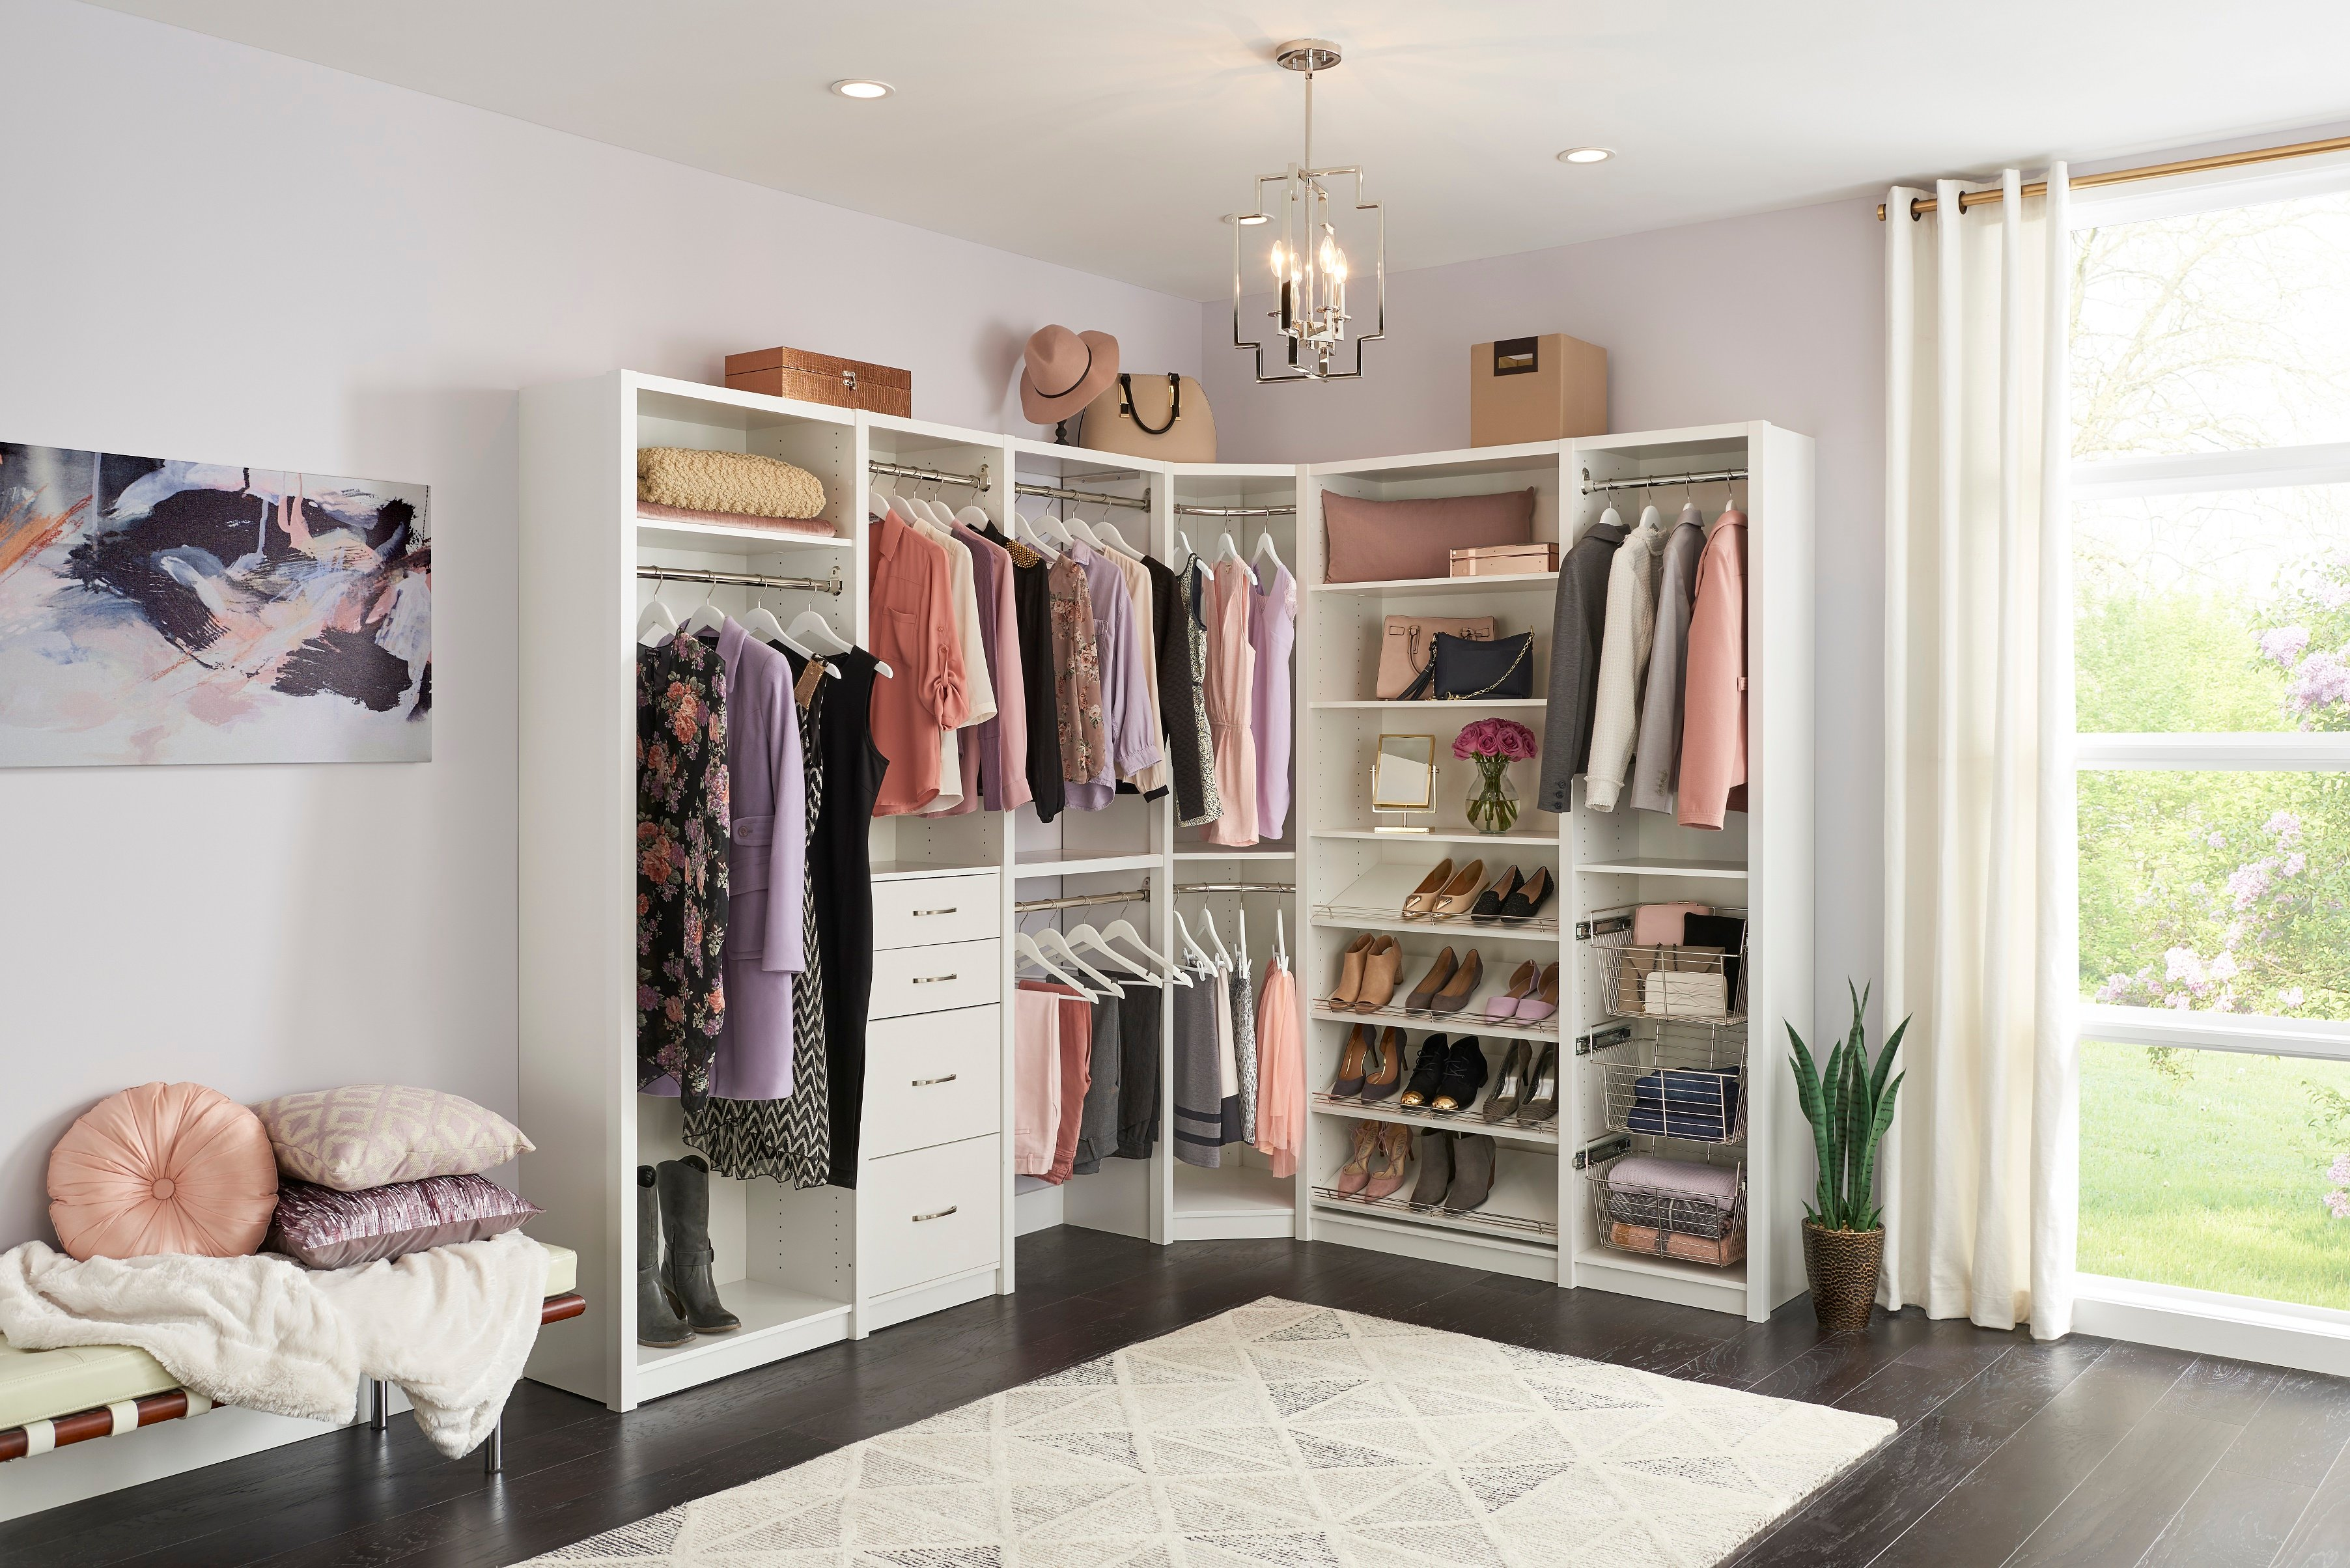 How to Organize Your Closet with Accessories